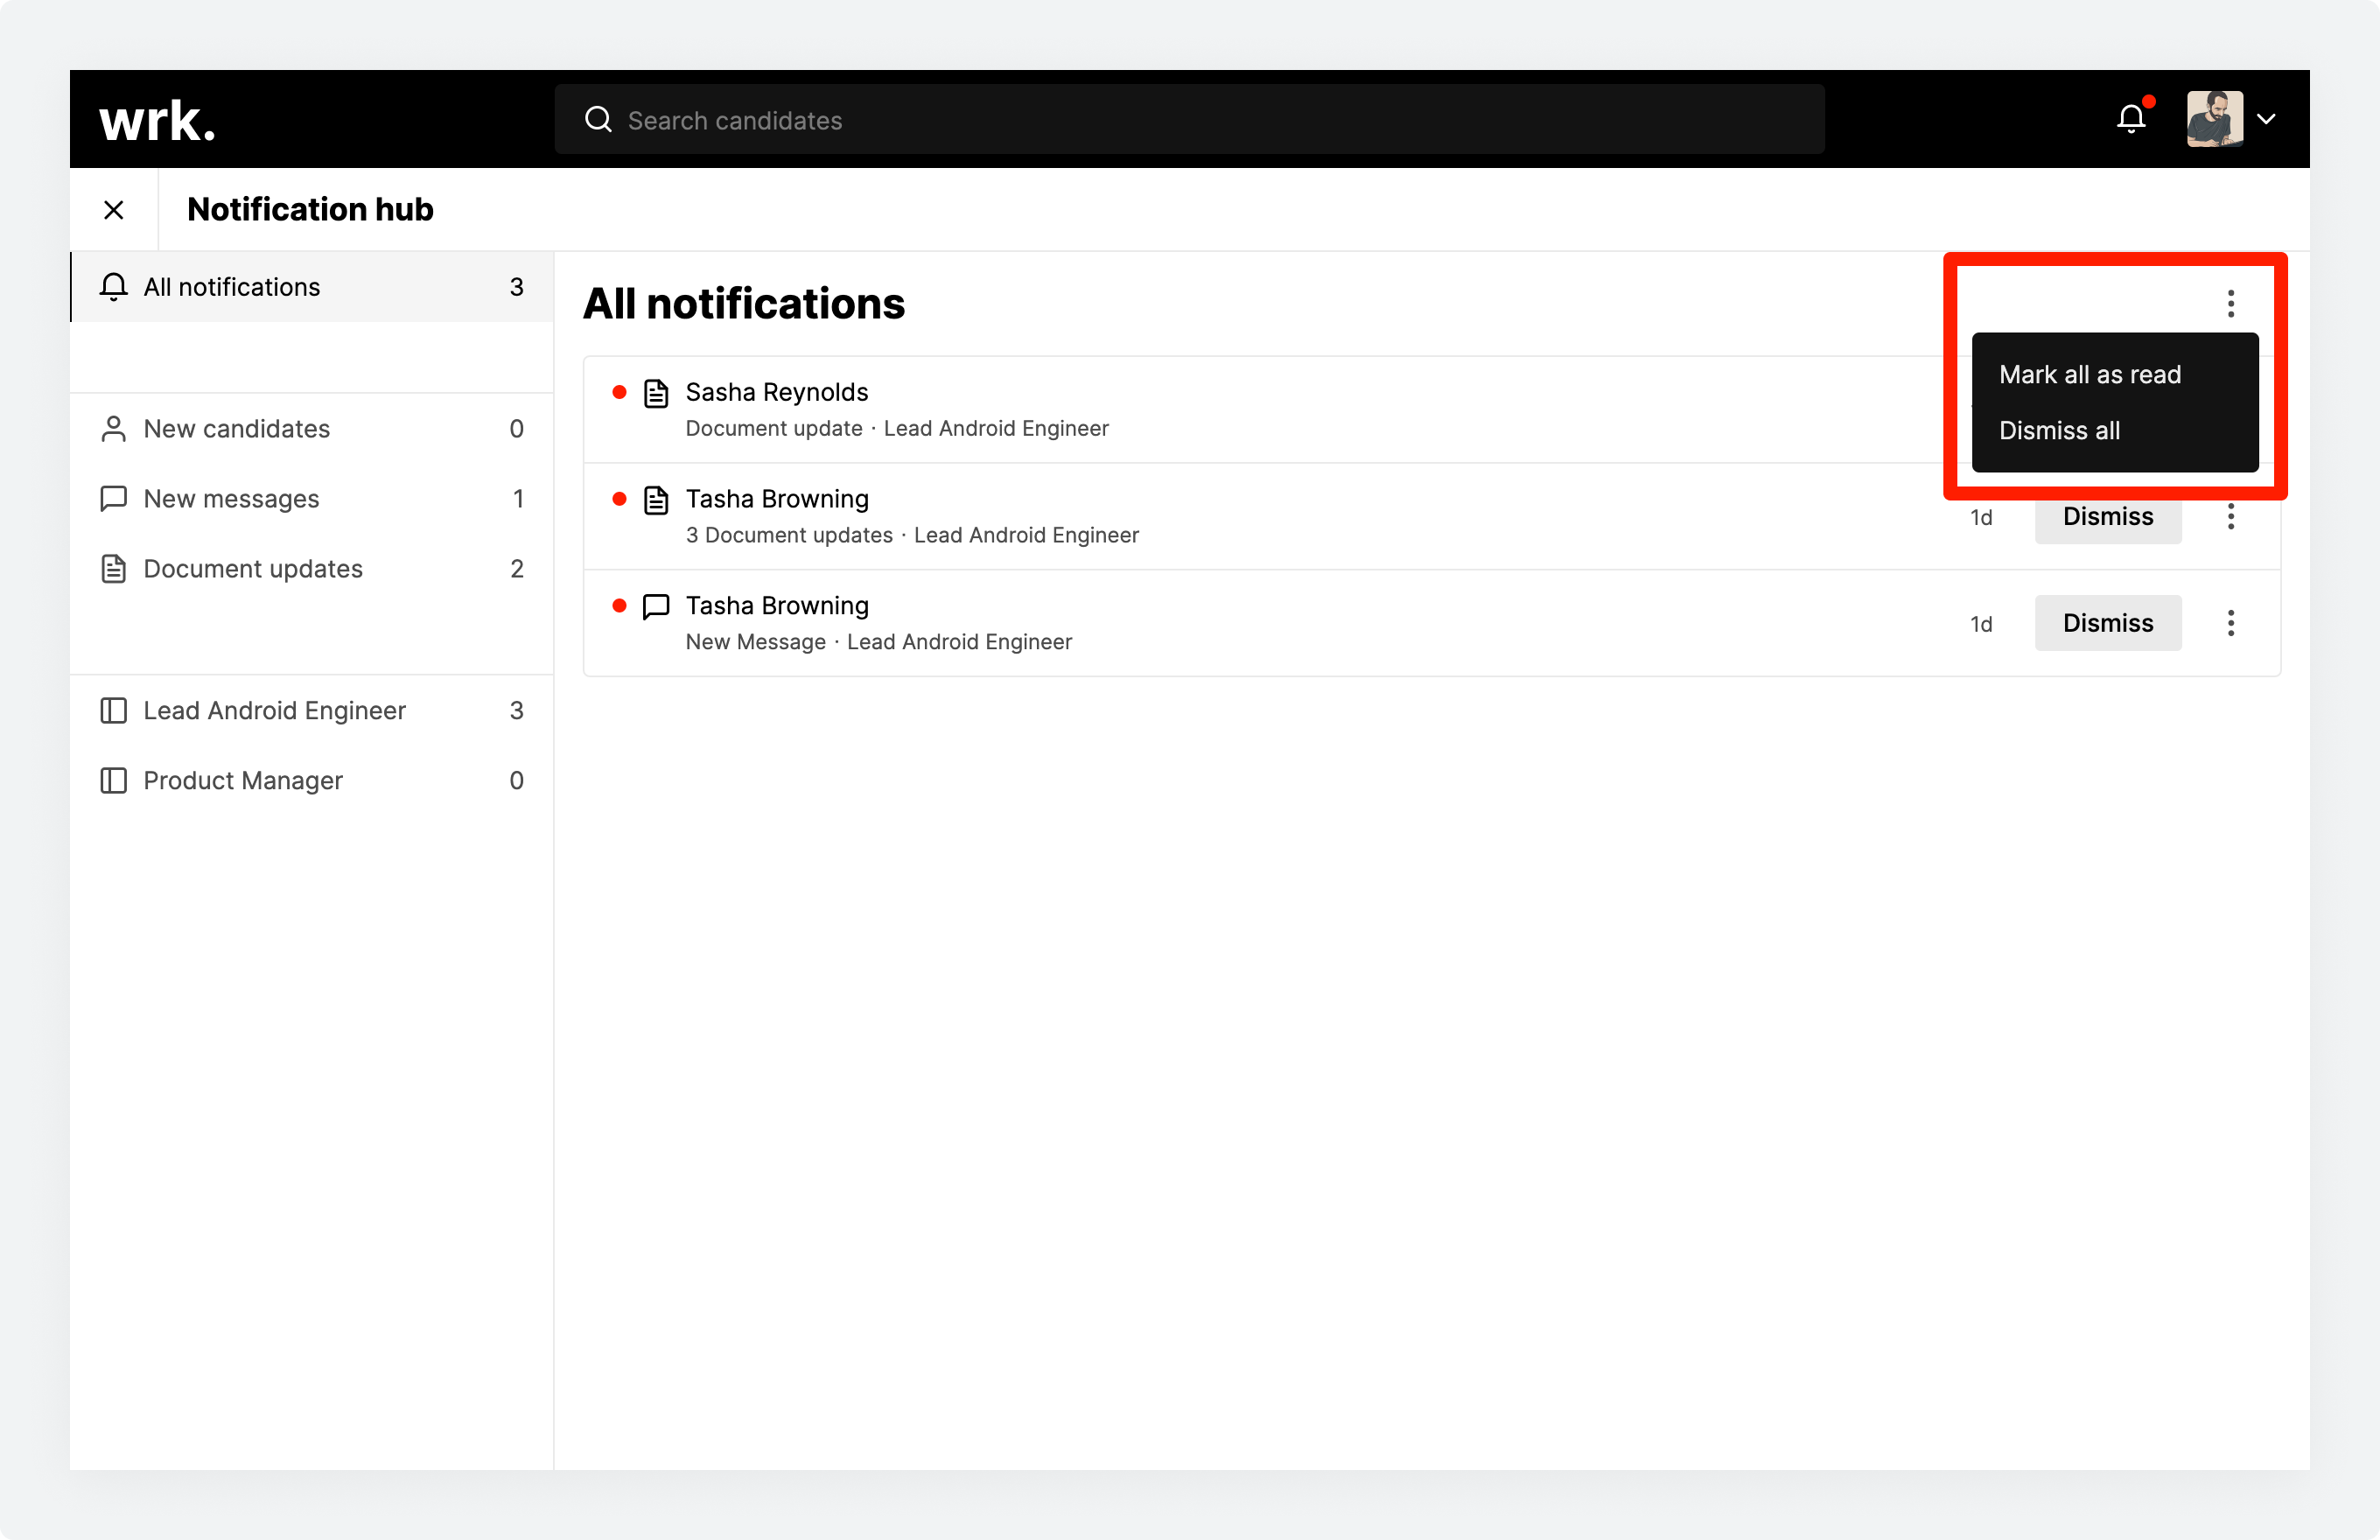 The notification hub in Wrk with the bulk actions highlighted